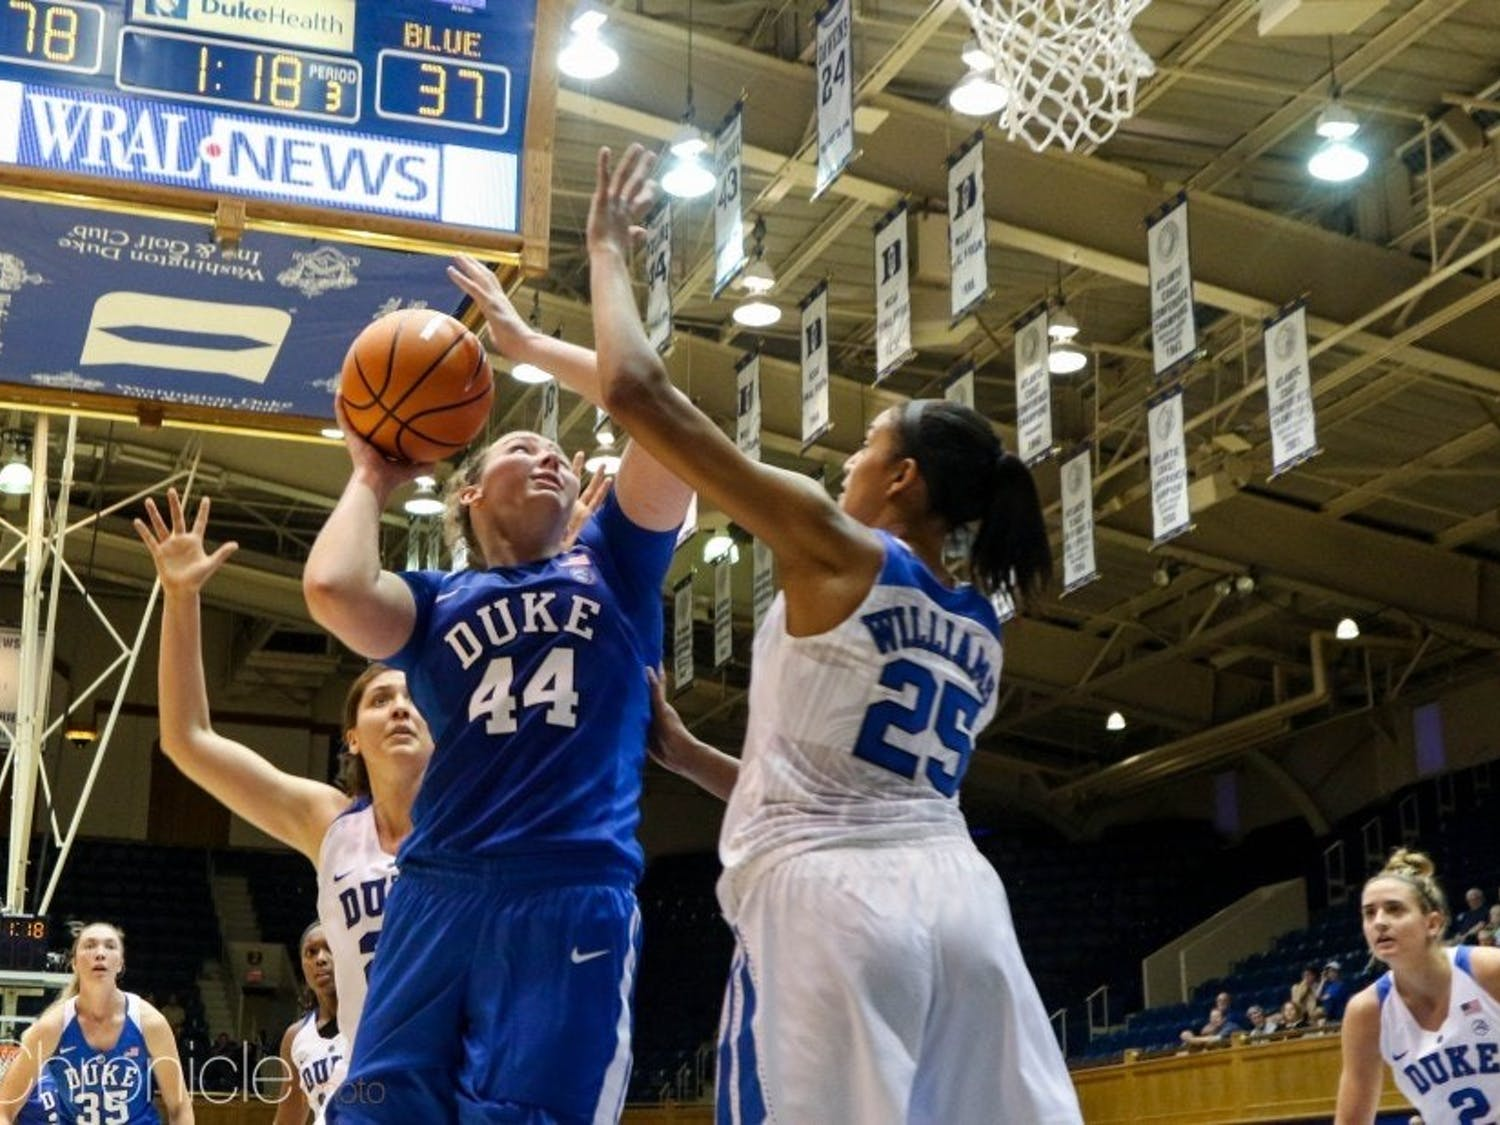 Madison Treece's role diminished as a sophomore, only playing 17 minutes and scoring a single point so far this season.